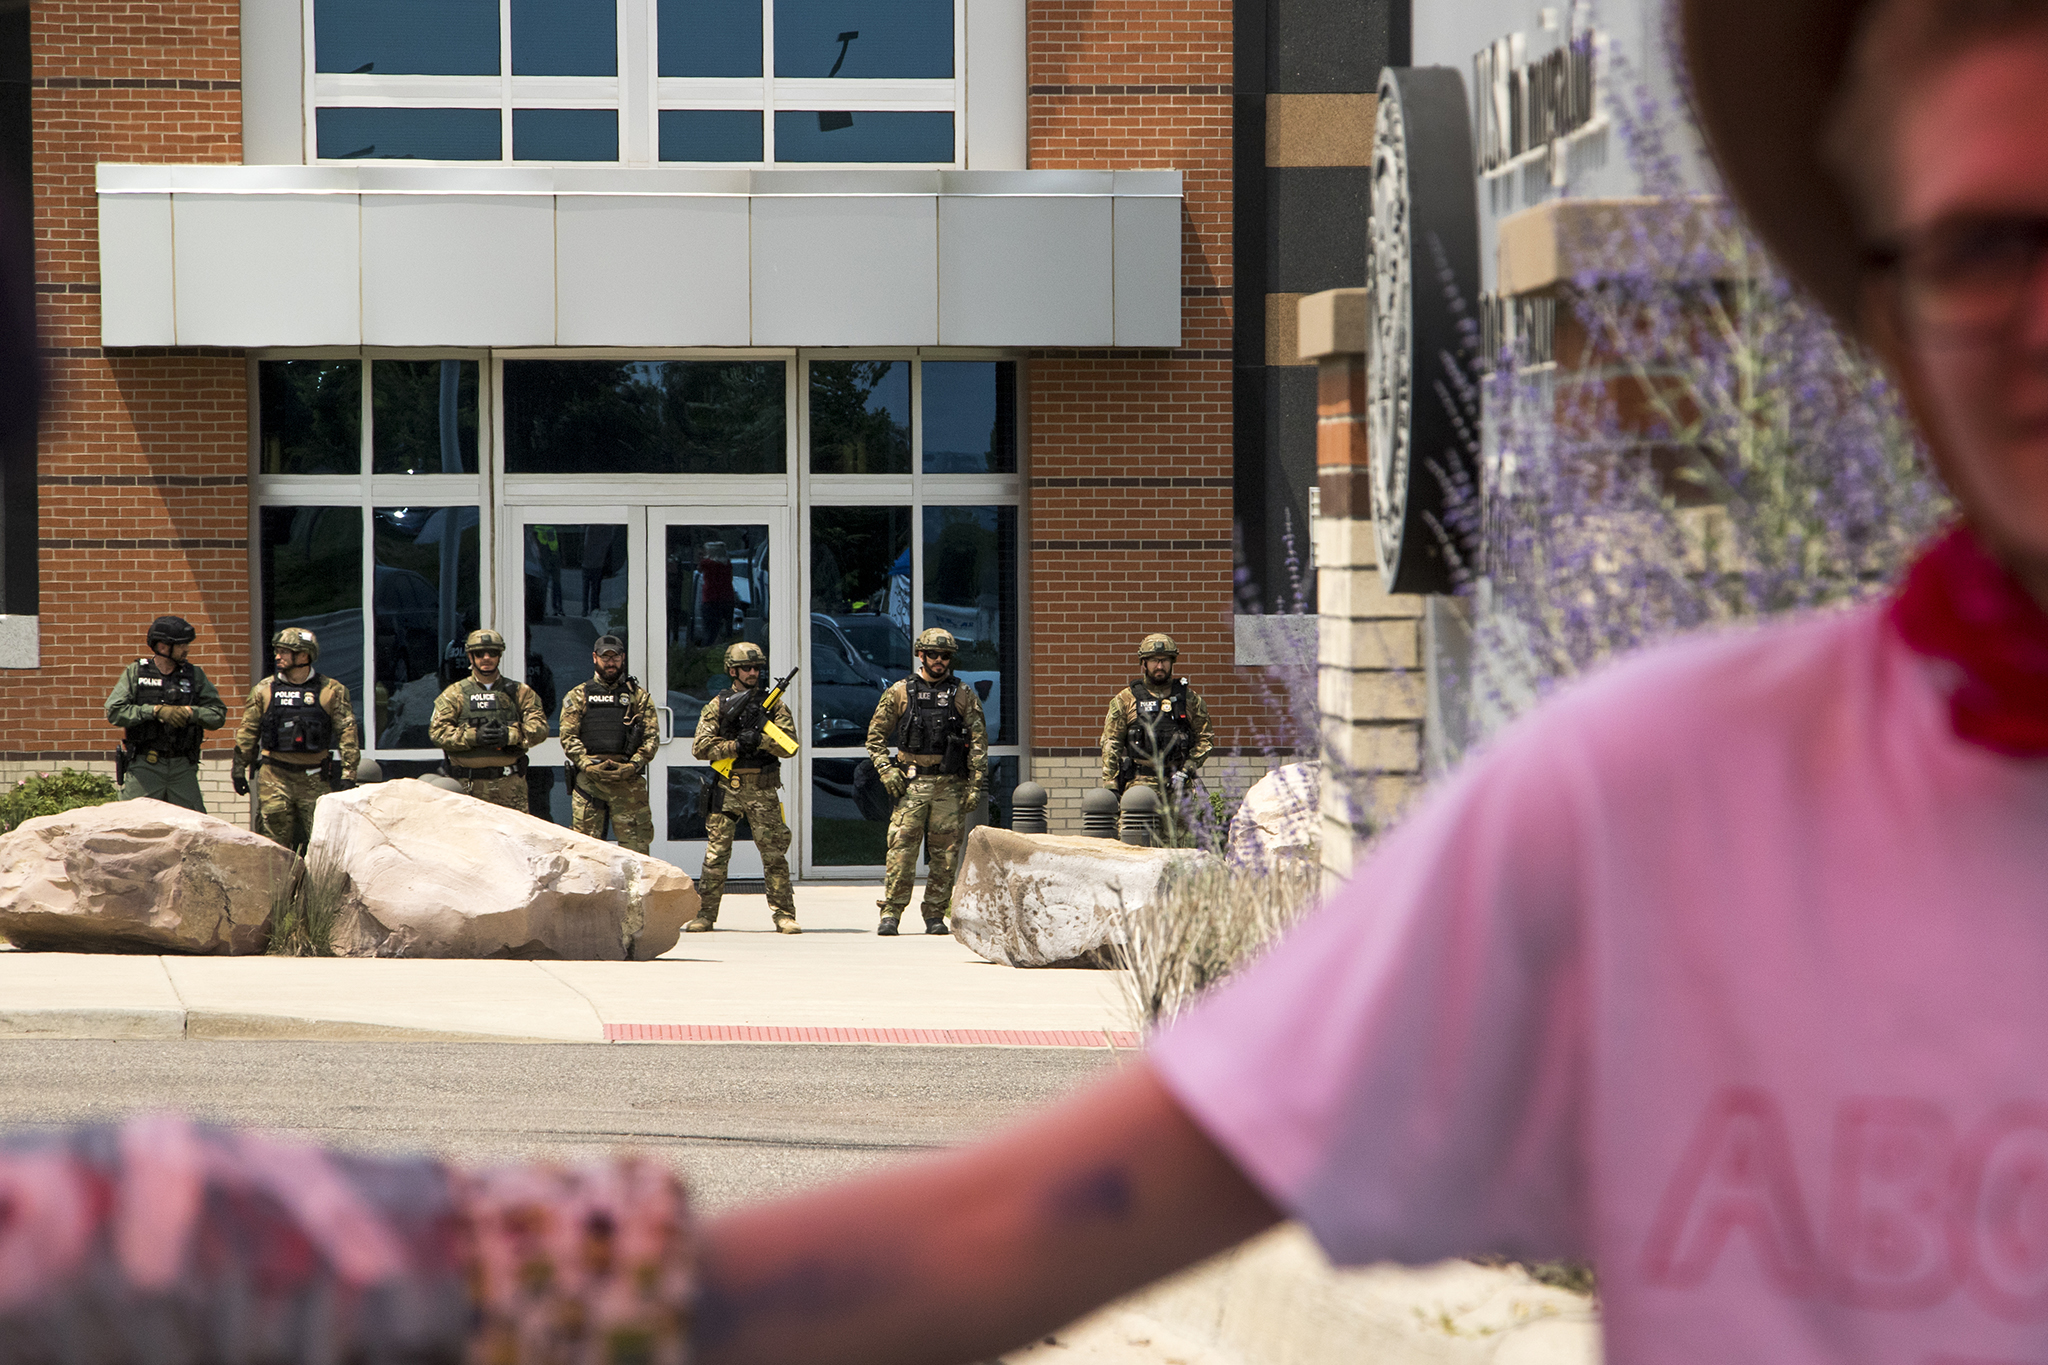 <p>U.S. Immigration and Customs Enforcement officers emerged equipped with military-style gear as protesters blockaded their headquarters in Centennial, Aug. 2, 2018. </p>